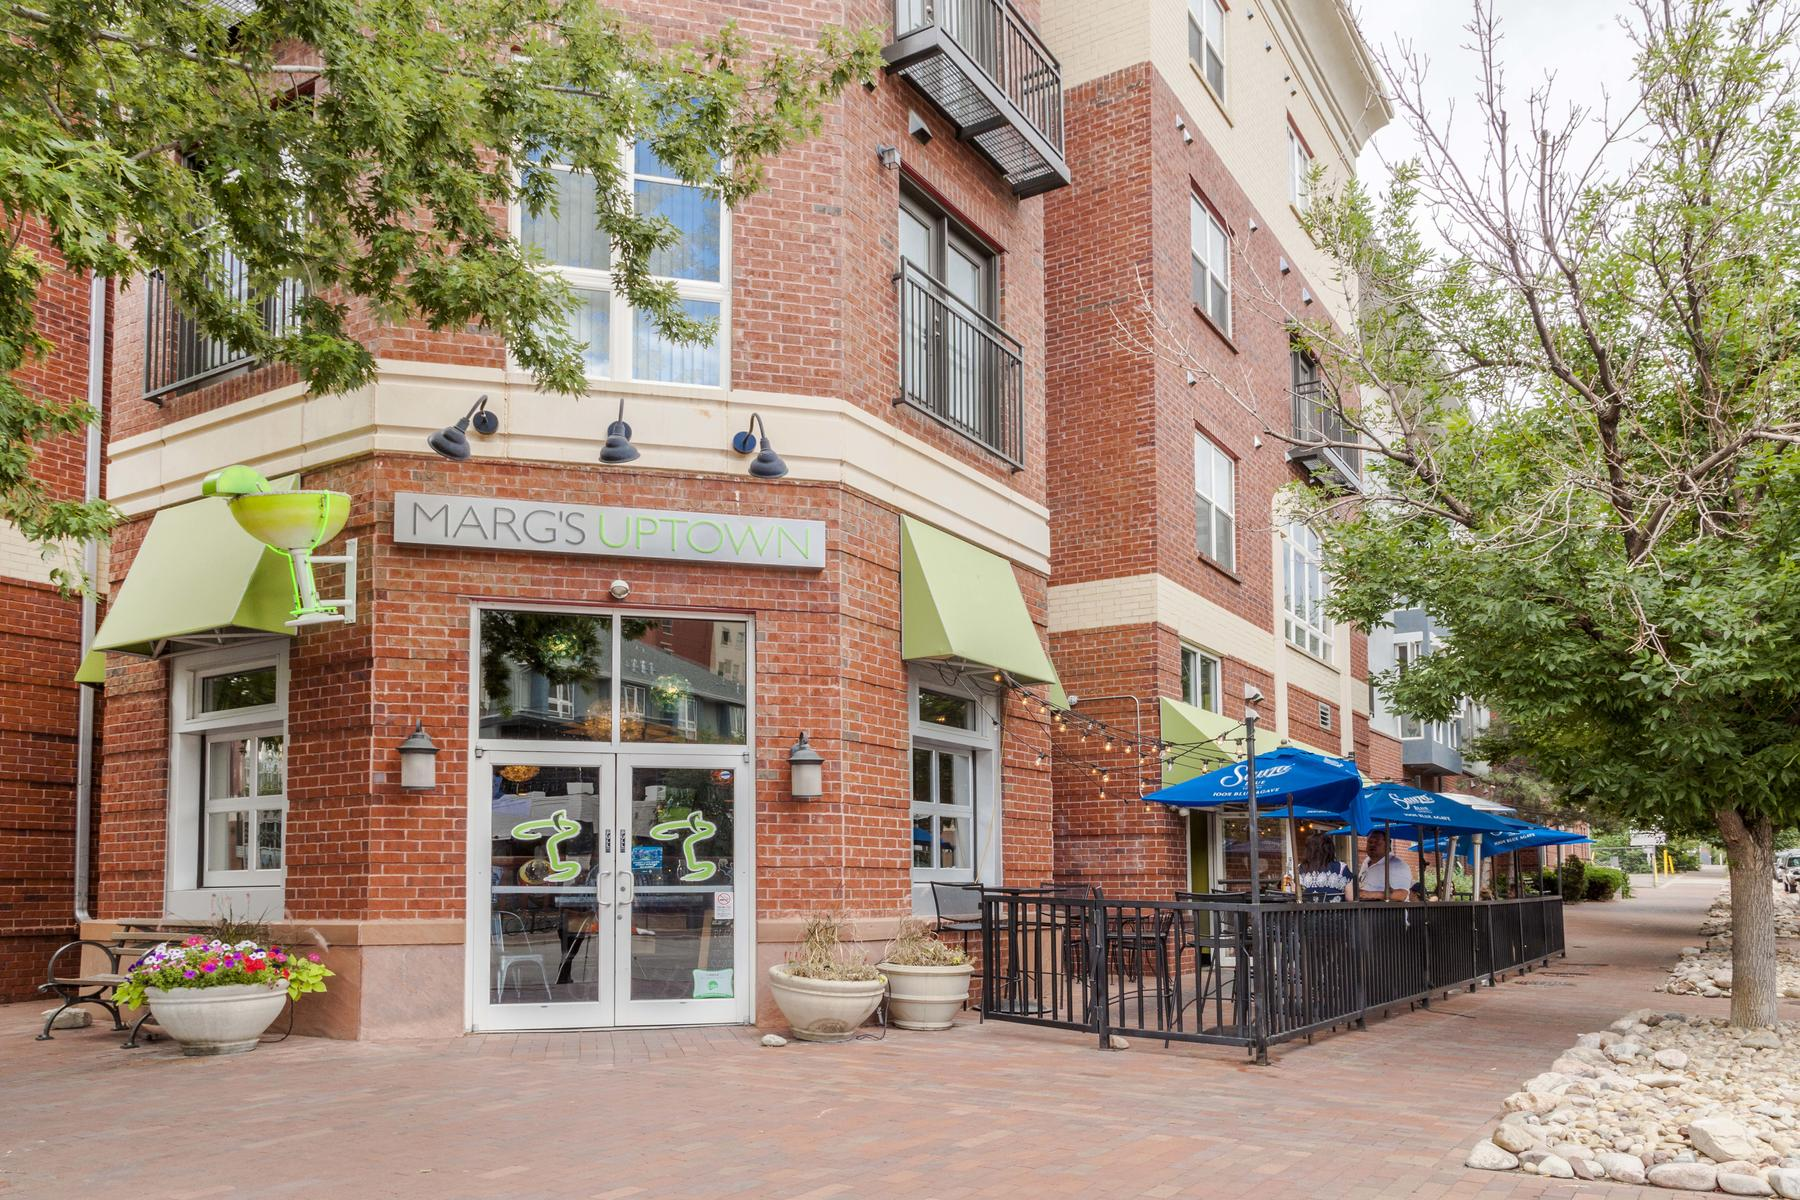 Additional photo for property listing at New Townhome With The Best City Lifestyle and Location Available! 2200 Tremont Place #8 Denver, Colorado 80205 United States